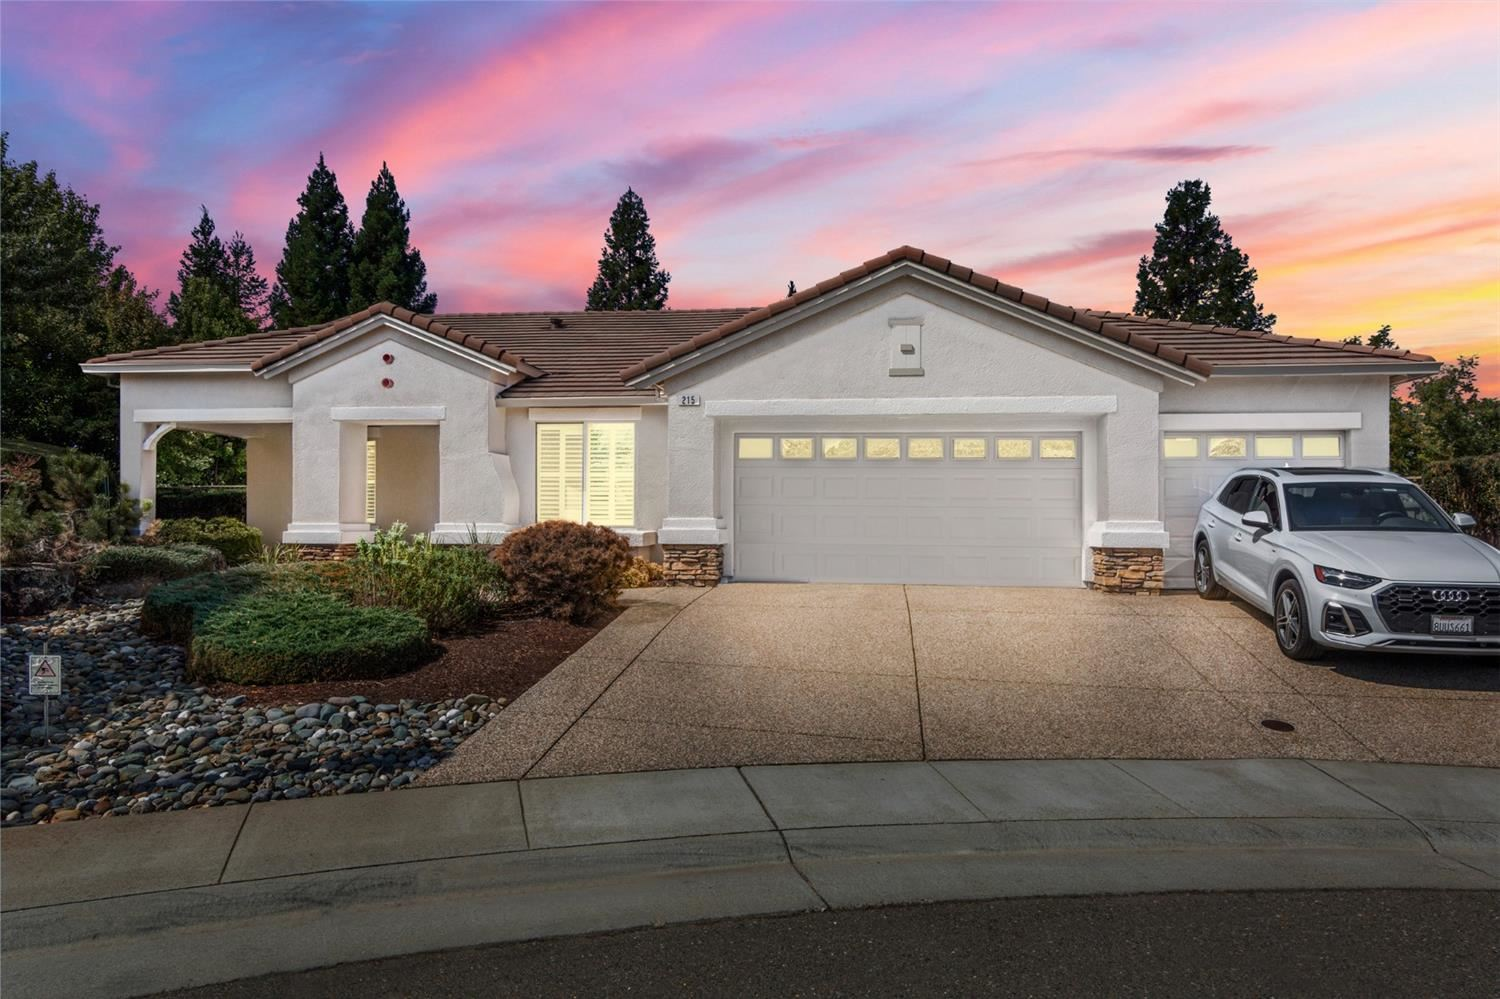 215 Lariat Place, Lincoln, CA 95648 - MLS#: 221124879